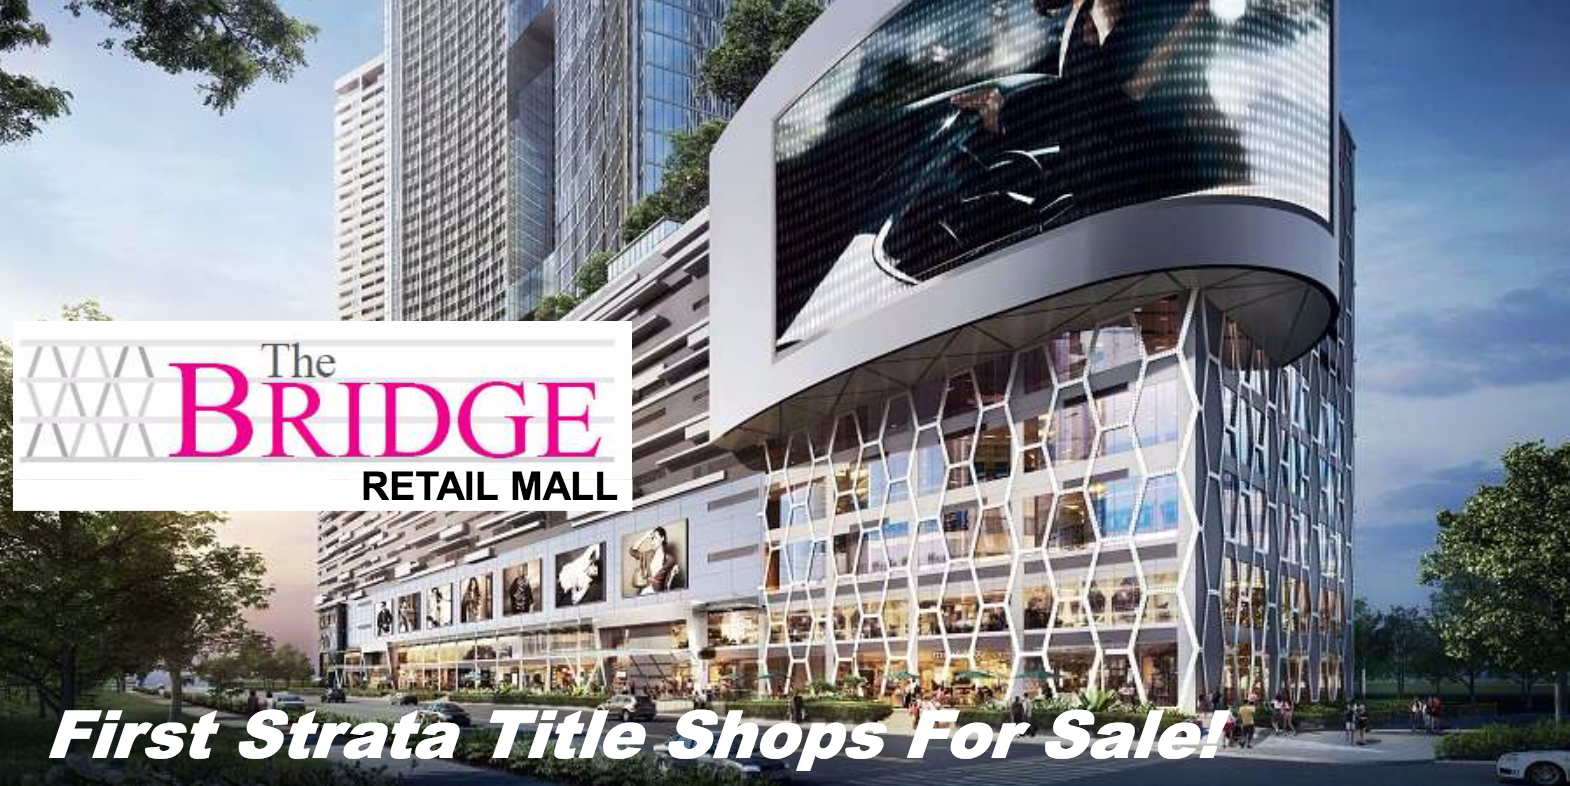 The Bridge Retail